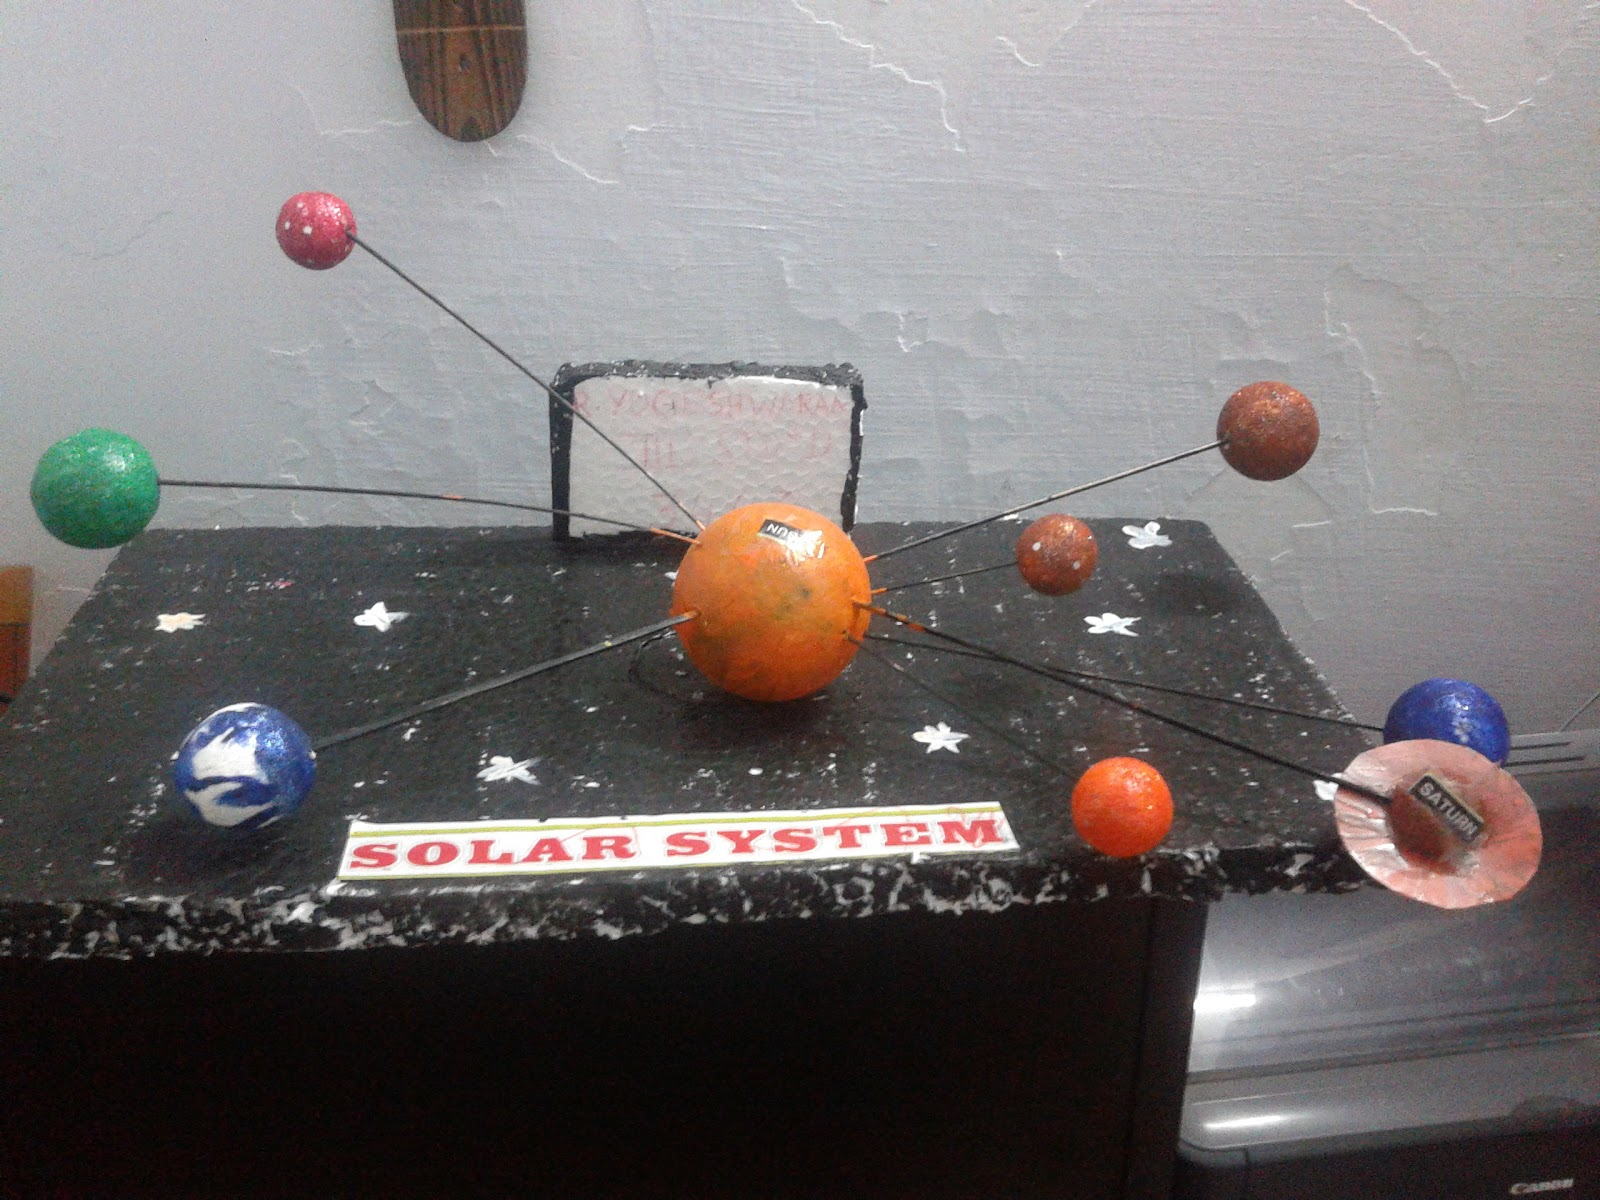 cars solar system projects - photo #27